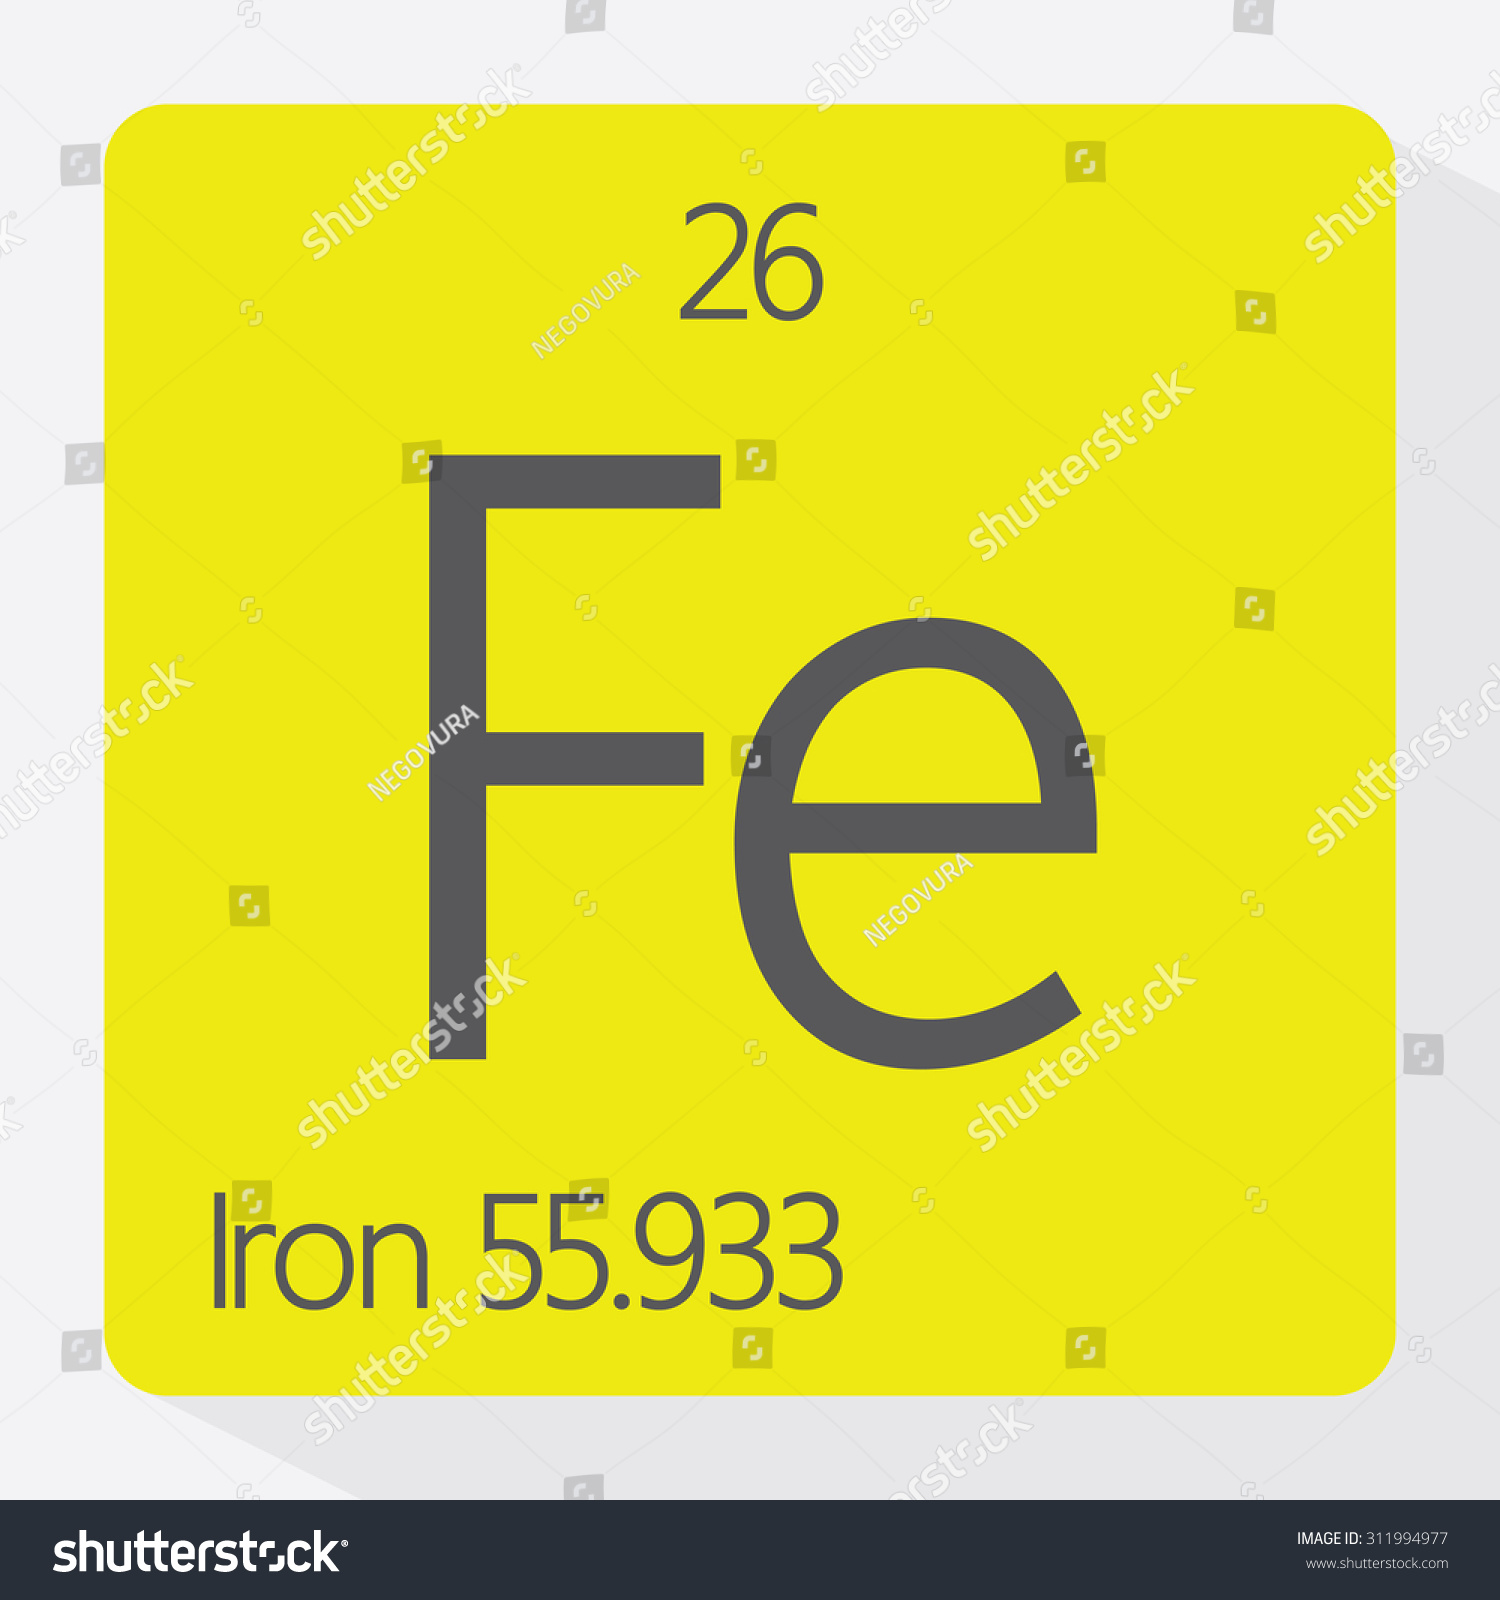 Iron symbol in periodic table image collections periodic table iron symbol in periodic table images periodic table images iron element periodic table aviongoldcorp periodic table gamestrikefo Image collections